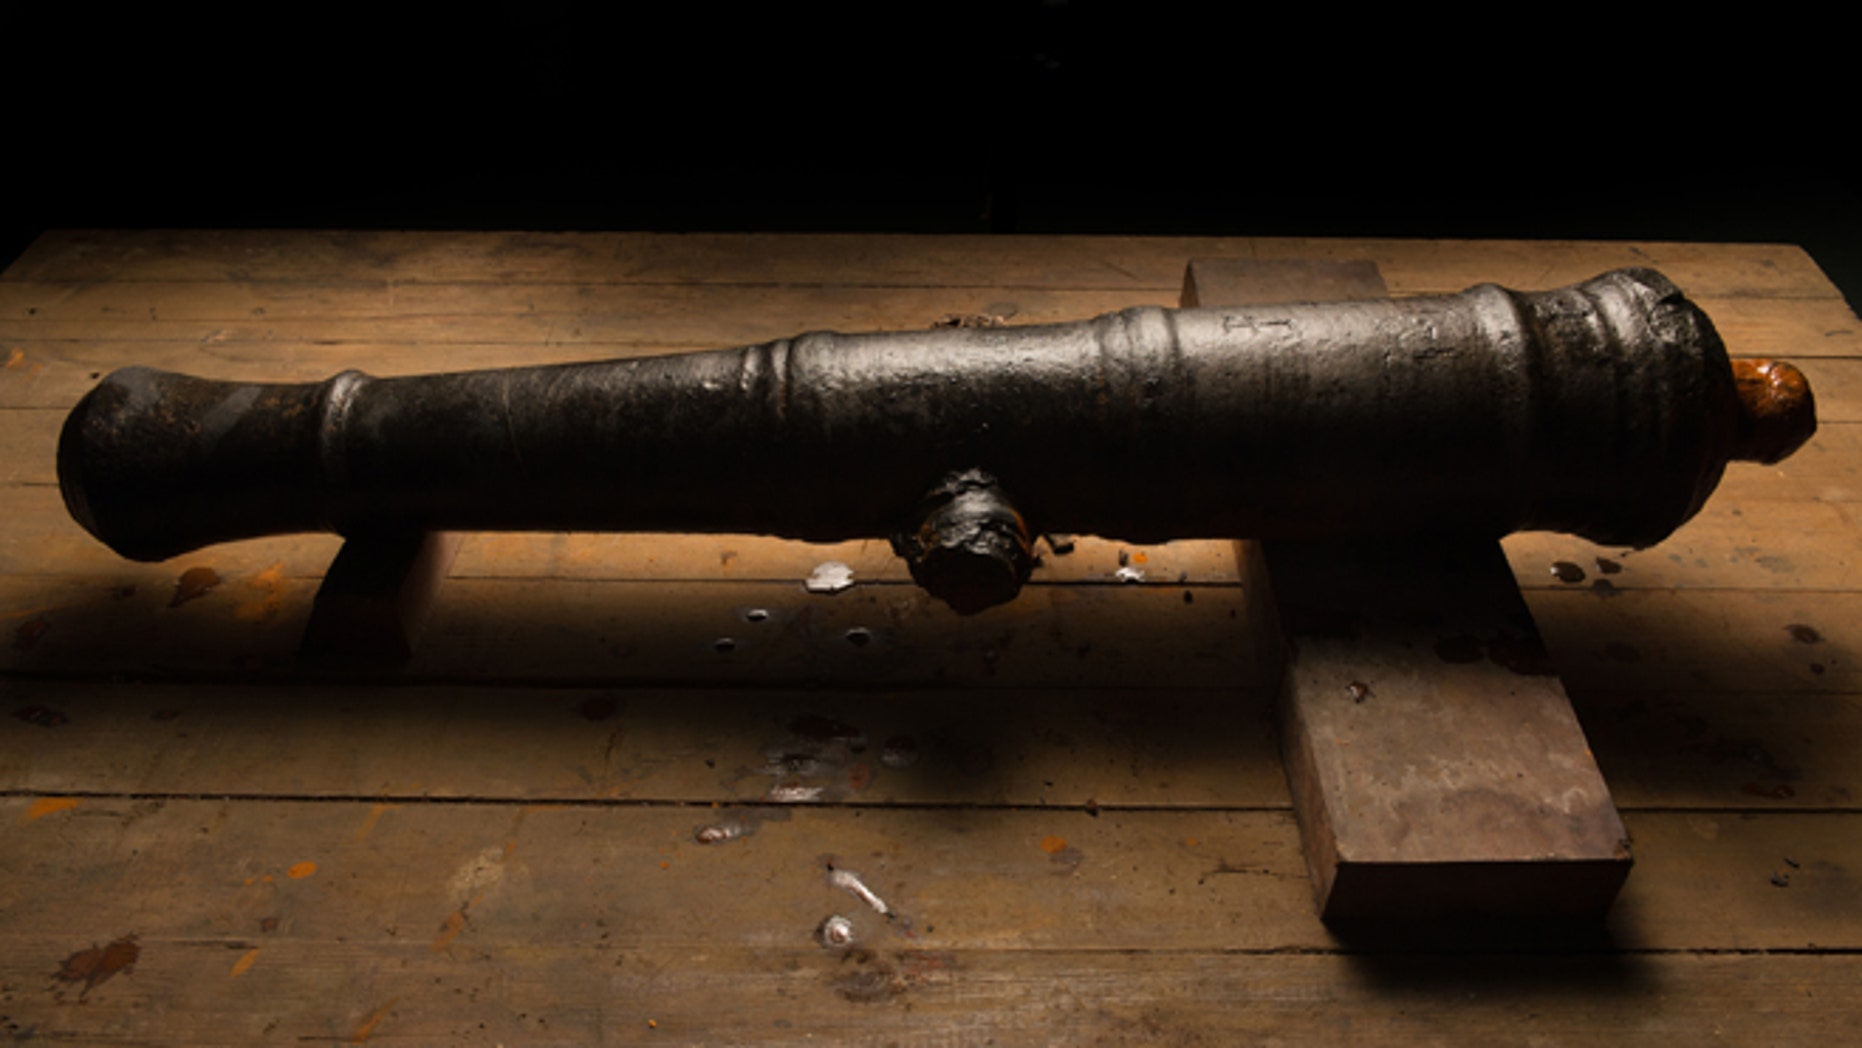 A 17th century cannon, found near the Lajas reef near Fort San Lorenzo, Colon.  The cannons are in conservation at the Patronato Panama Viejo laboratory in Panama City, Panama.  The cannon most likely belonged to Captain Henry Morgan's lost fleet of 1671.